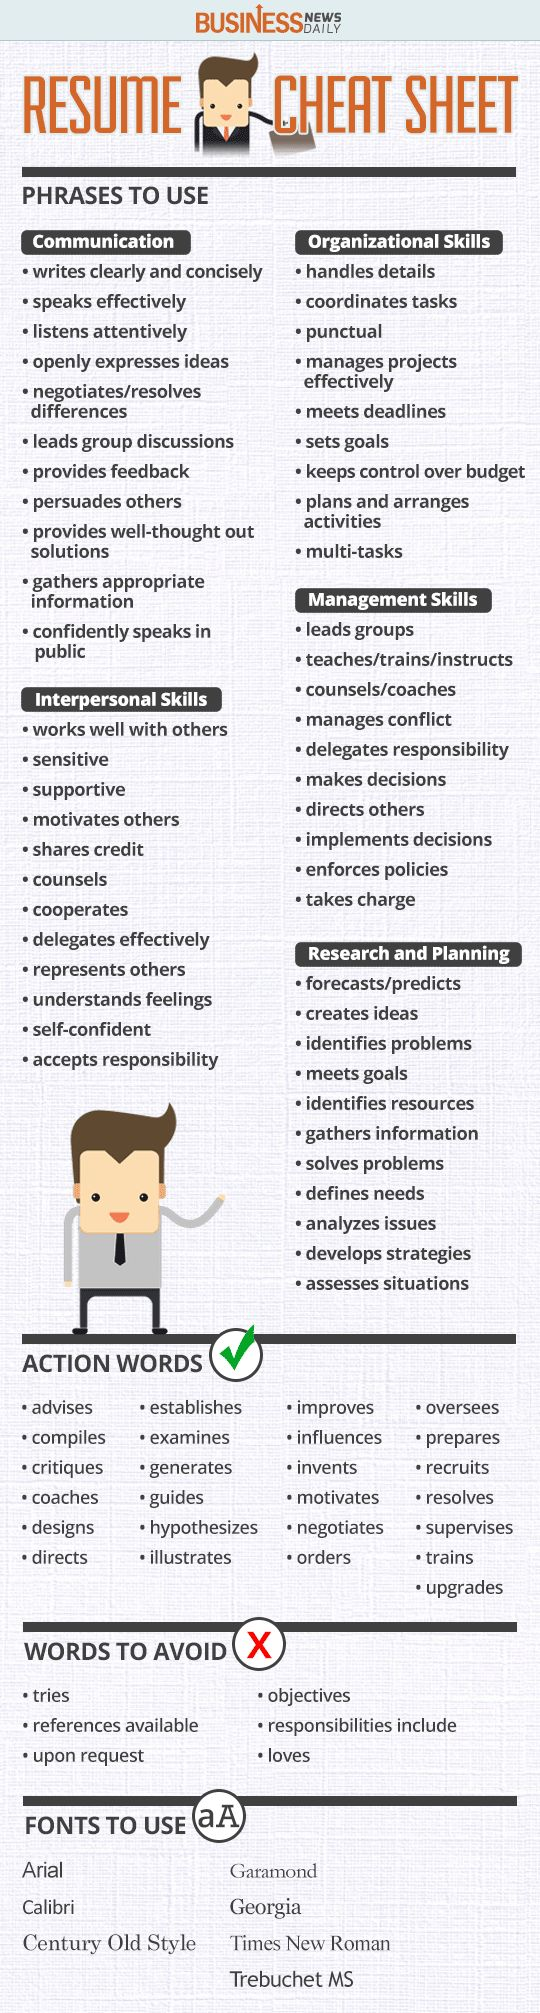 Opposenewapstandardsus  Pretty  Ideas About Resume On Pinterest  Cv Format Resume  With Heavenly Resume Cheat Sheet Infographic Andrews Almost Done With A Complete Unit On Employment Which With Adorable Picture Resume Also Accountant Resume Samples In Addition Example Of Cna Resume And Examples Of Teaching Resumes As Well As Best It Resume Additionally Office Manager Resume Skills From Pinterestcom With Opposenewapstandardsus  Heavenly  Ideas About Resume On Pinterest  Cv Format Resume  With Adorable Resume Cheat Sheet Infographic Andrews Almost Done With A Complete Unit On Employment Which And Pretty Picture Resume Also Accountant Resume Samples In Addition Example Of Cna Resume From Pinterestcom